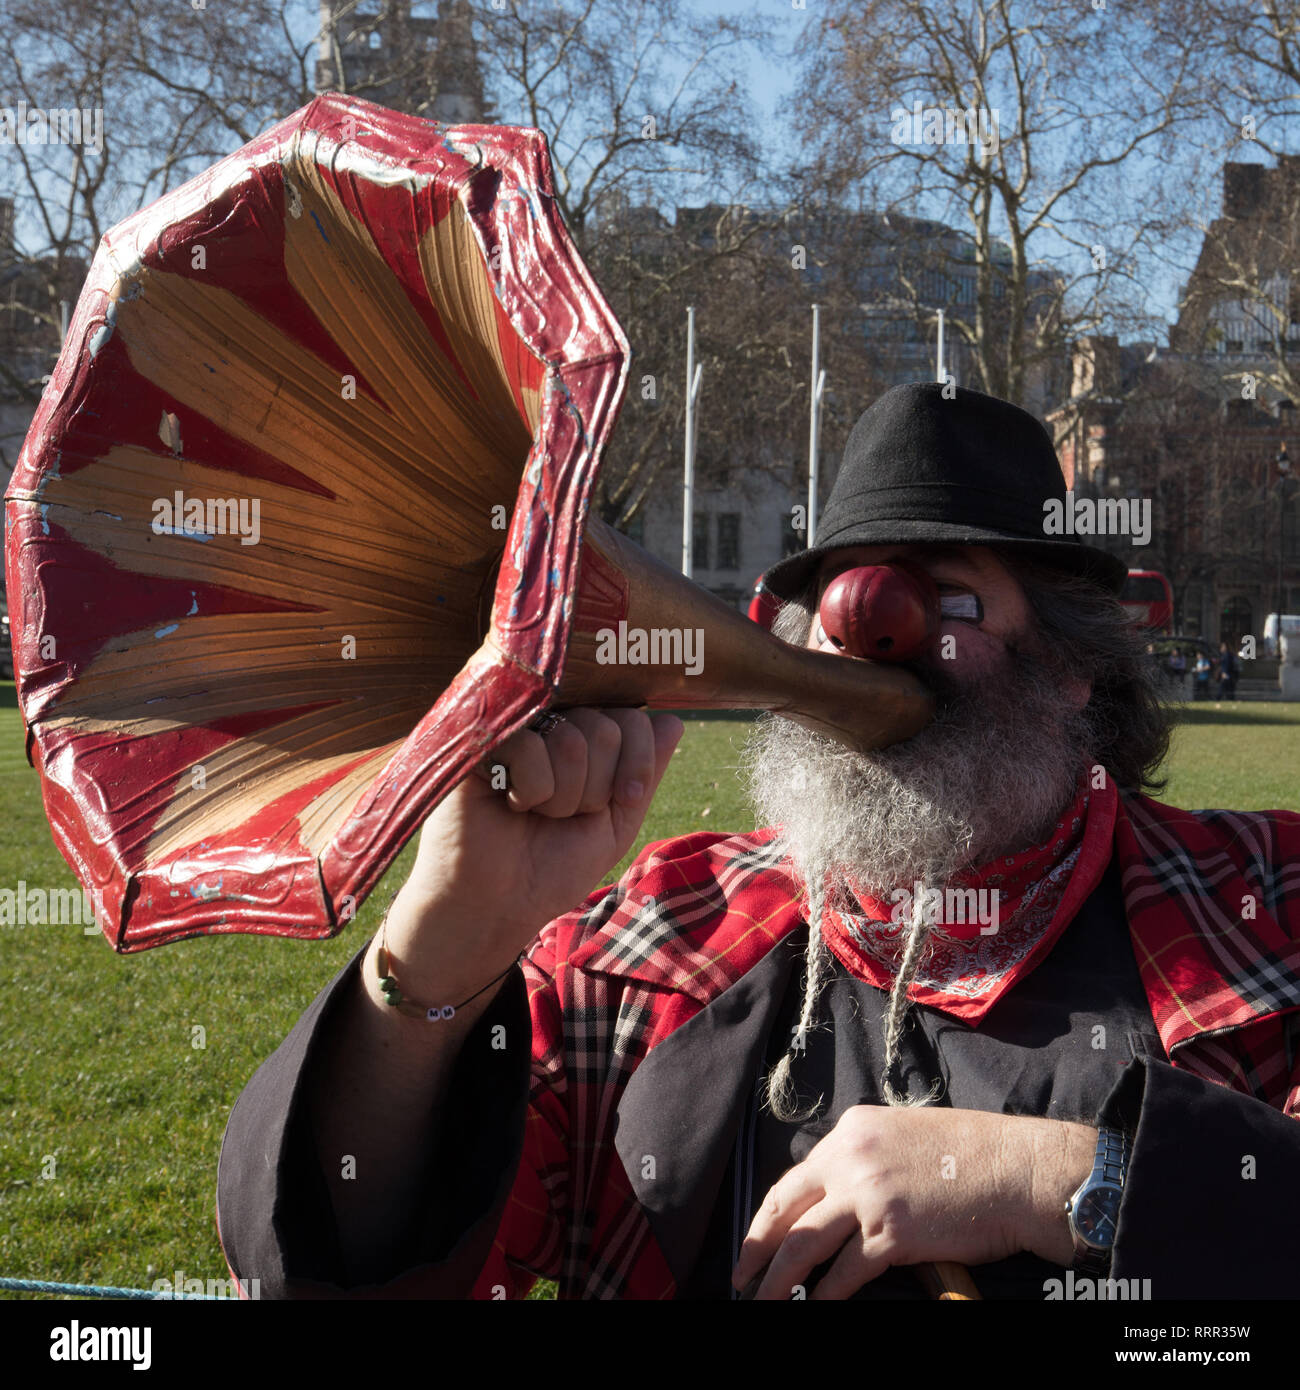 London, UK. 26th February 2019. Professor Clown Eek having an alternative Brexit protest on Parliament Square, London, UK, today, objecting be compared with politicians. Credit: Joe Kuis/ Alamy Live News - Stock Image